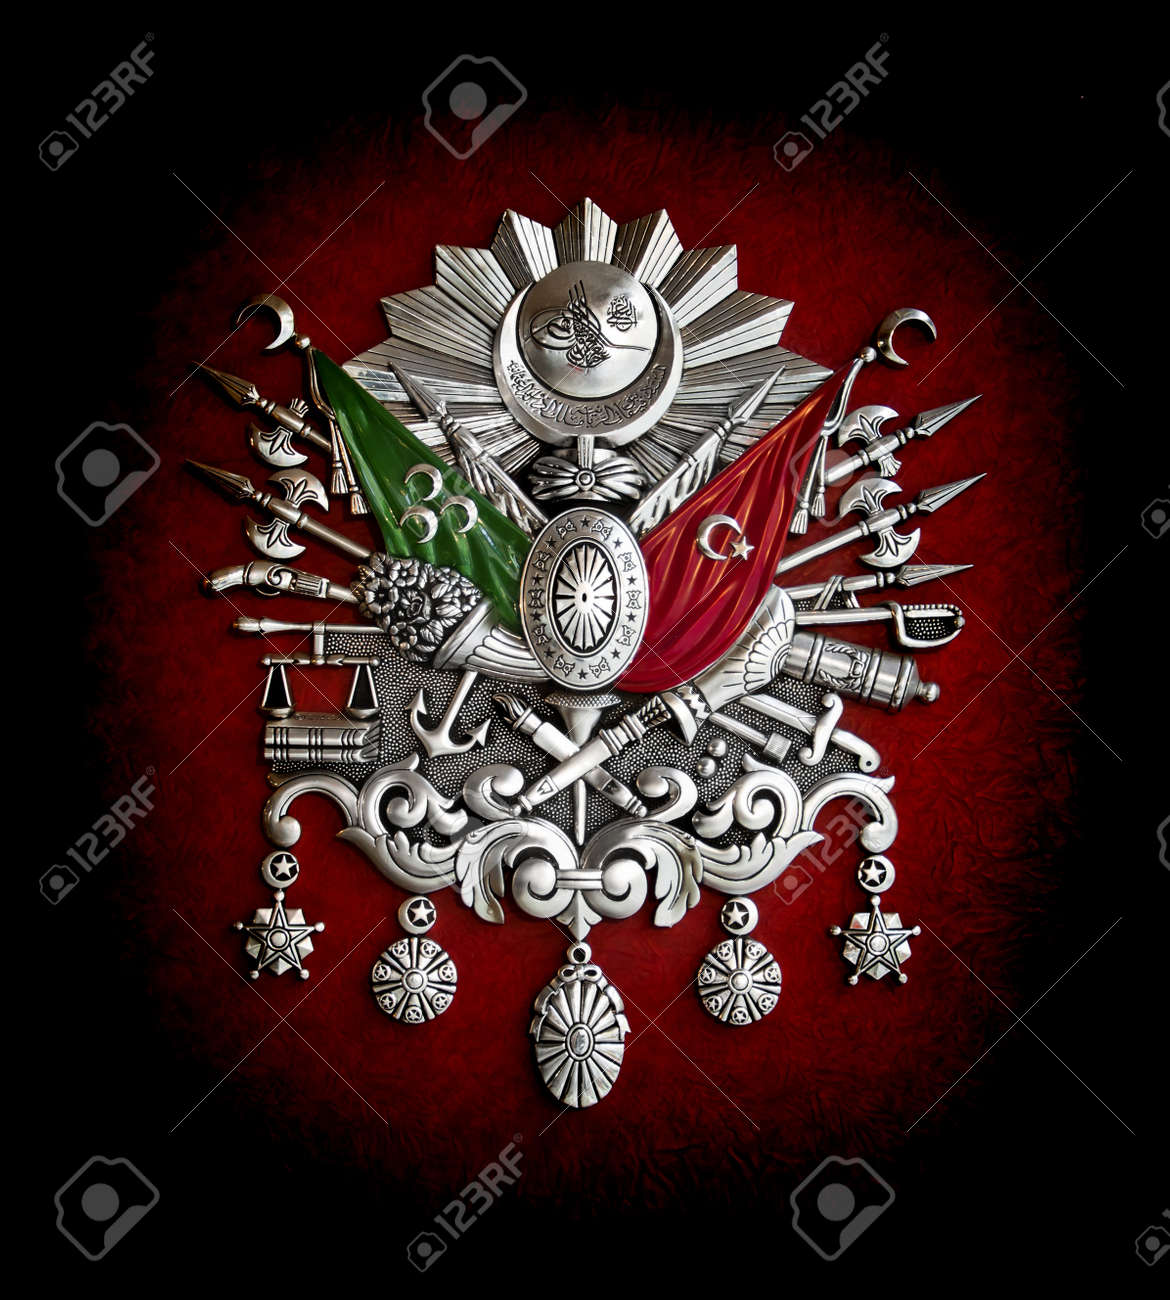 Ottoman Empire coat-of-arms symbol Stock Photo - 18817474